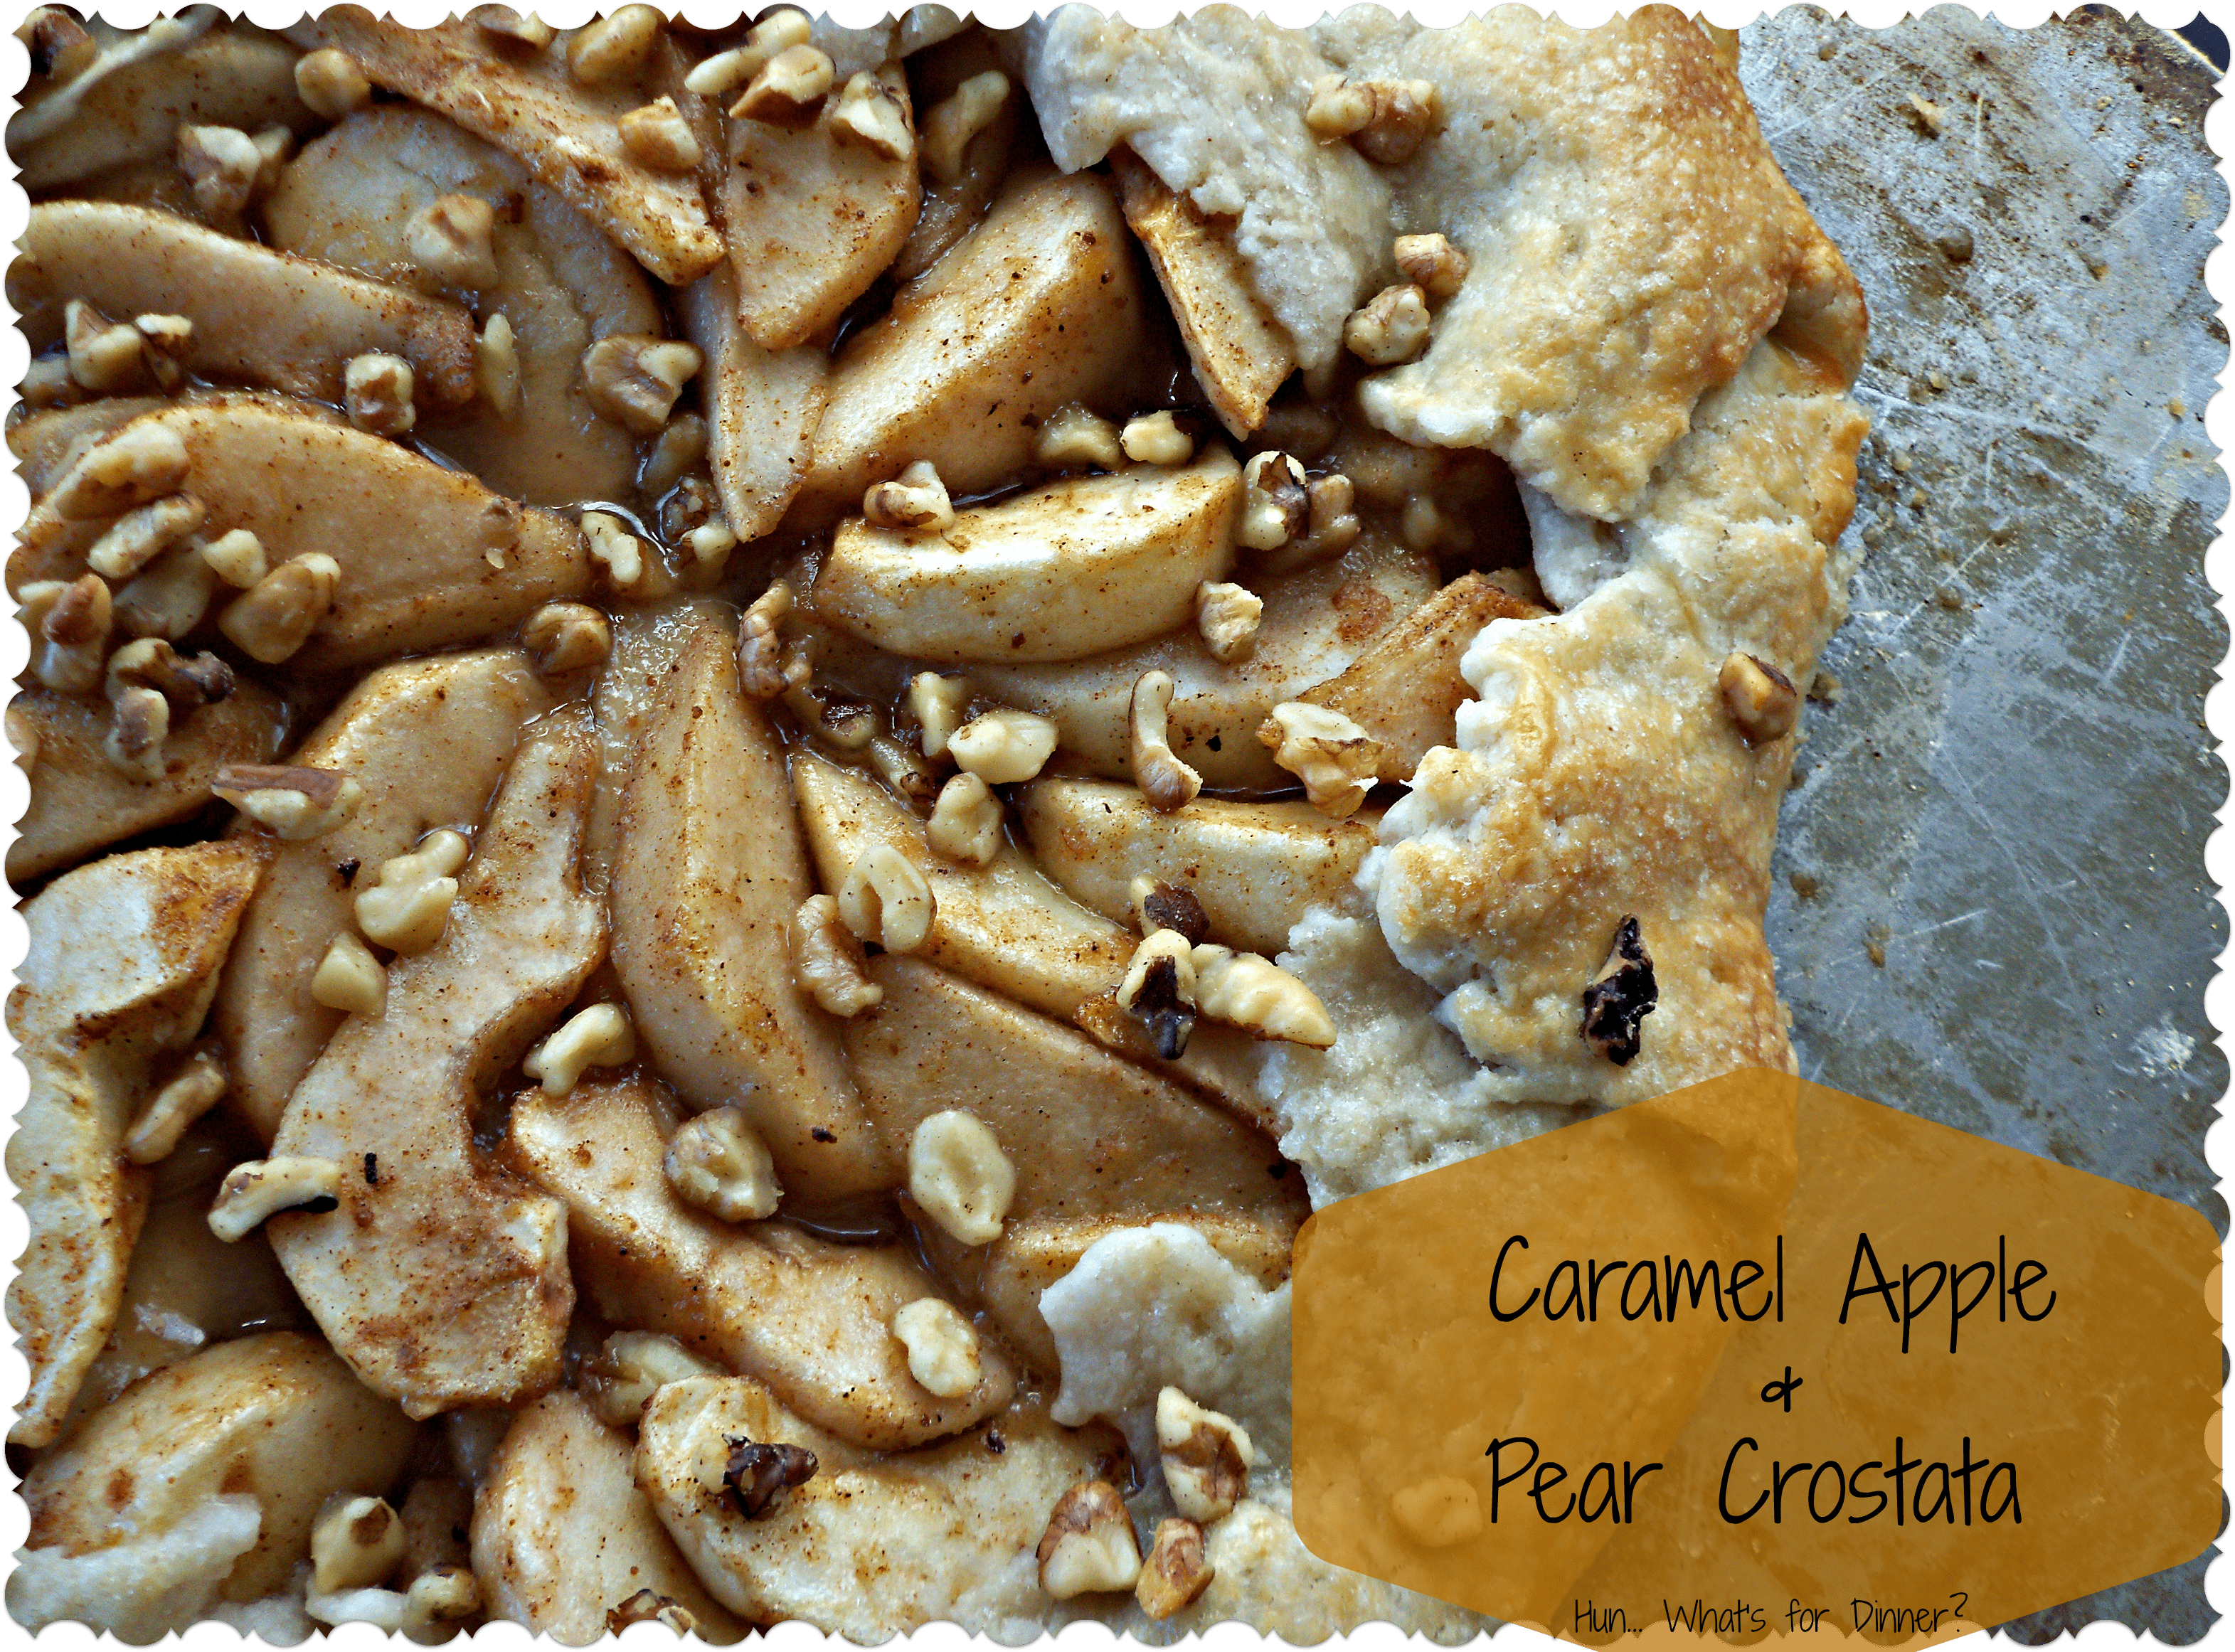 Caramel Apple and Pear Crostata #recipe